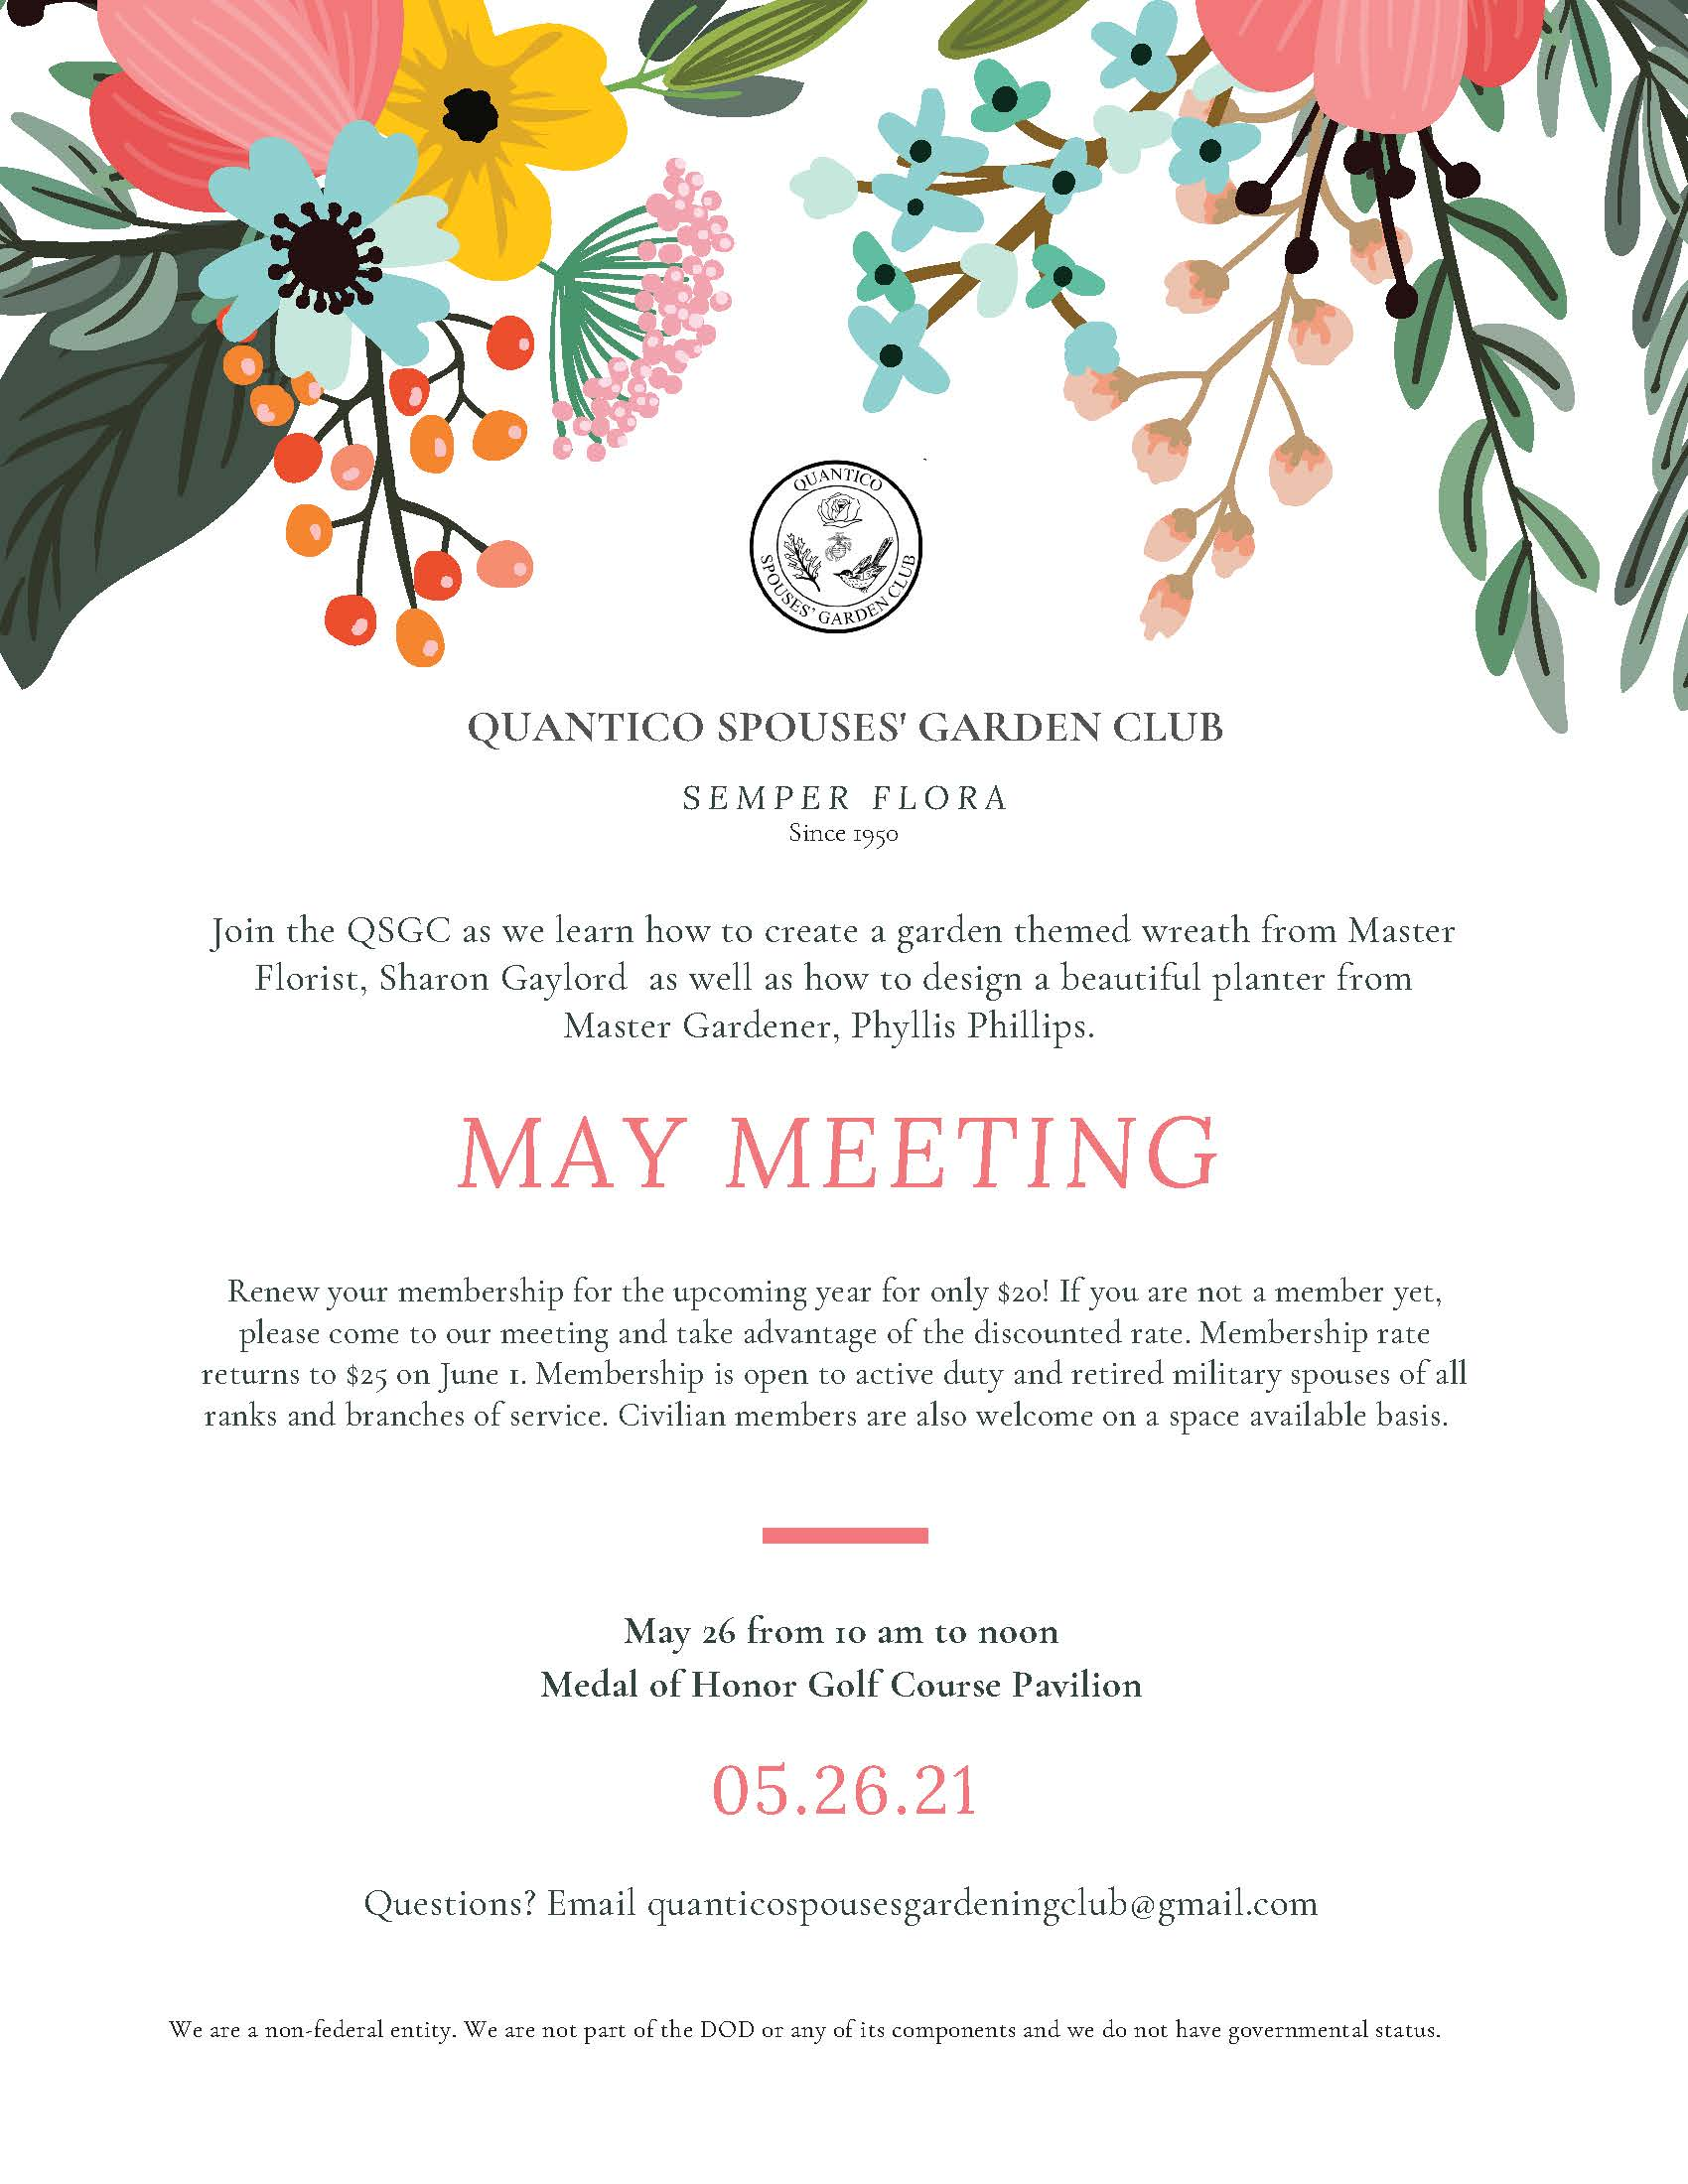 Quantico Spouse Garden Club May Meeting